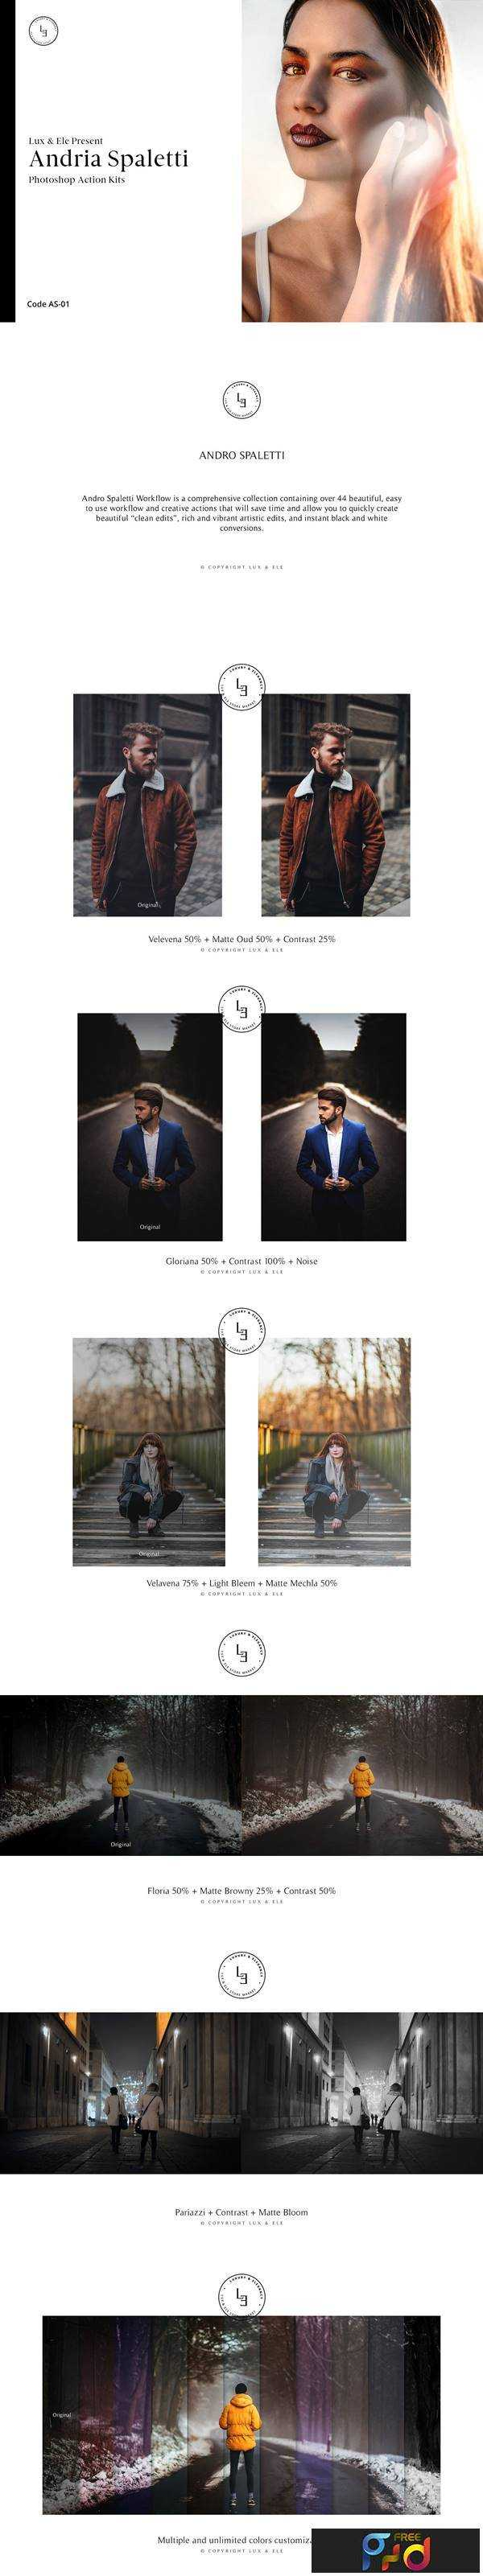 1805288 Andria SPALETTI Photoshop Actions 2259356 1